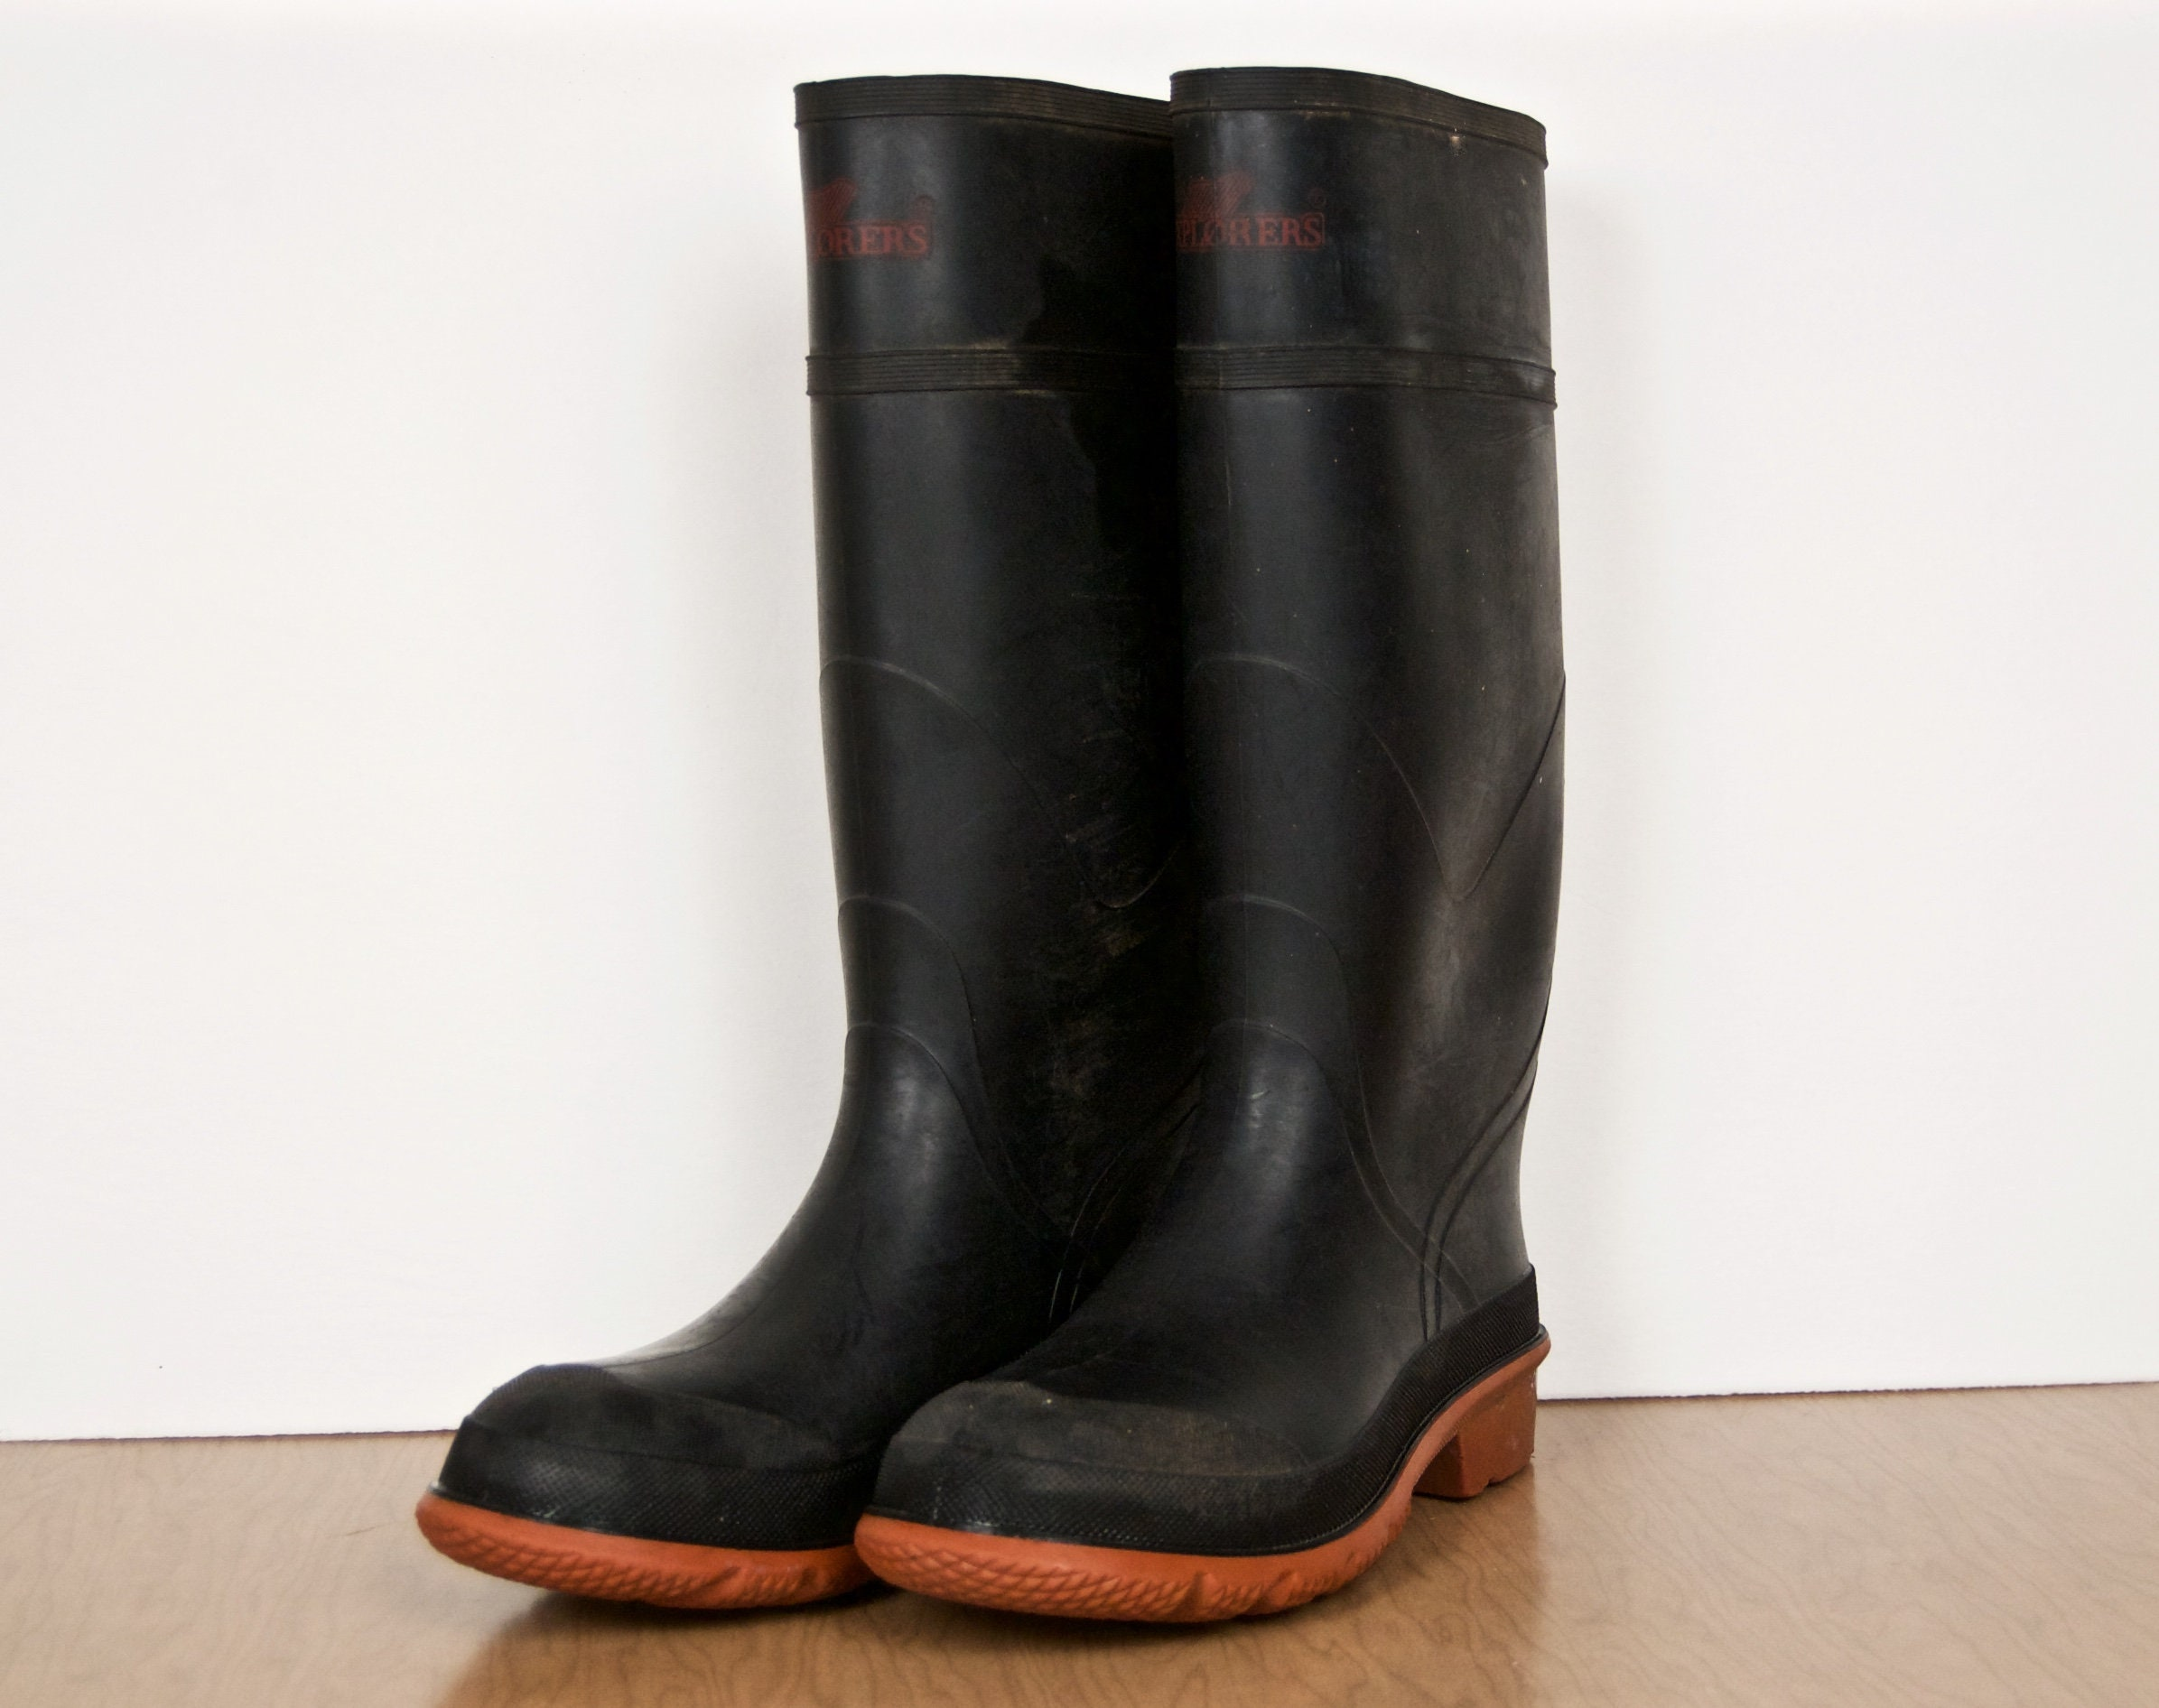 beb7a453cf41e Vintage Rubber Rain Boots / Explorers Waterproof Hunting Boots / black  rubber water proof work books w/ brick red orange soles / US Men's 9